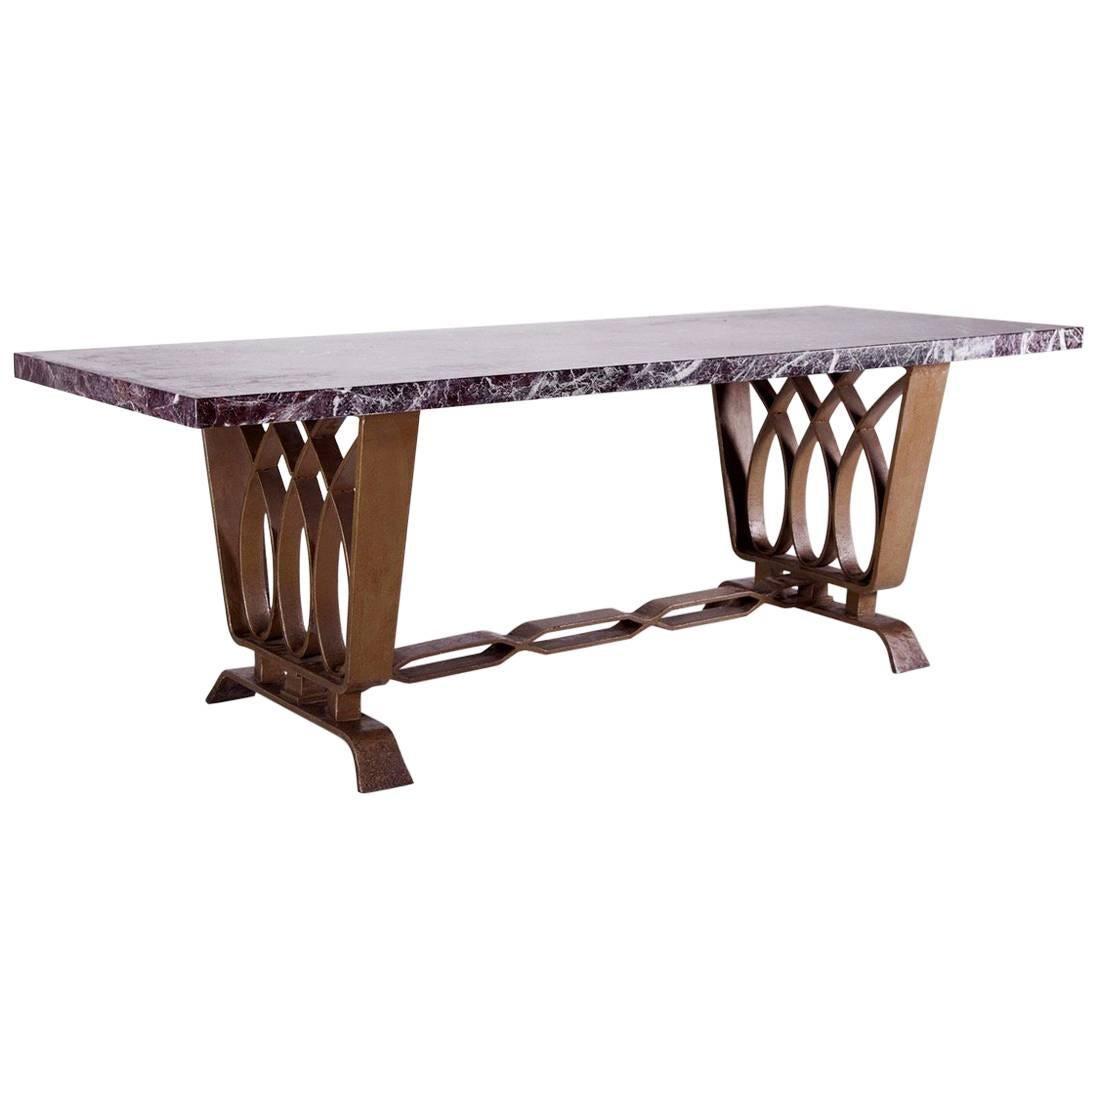 Forged Iron Dining Room Table by Pierluigi Colli for Colli Production, Italy